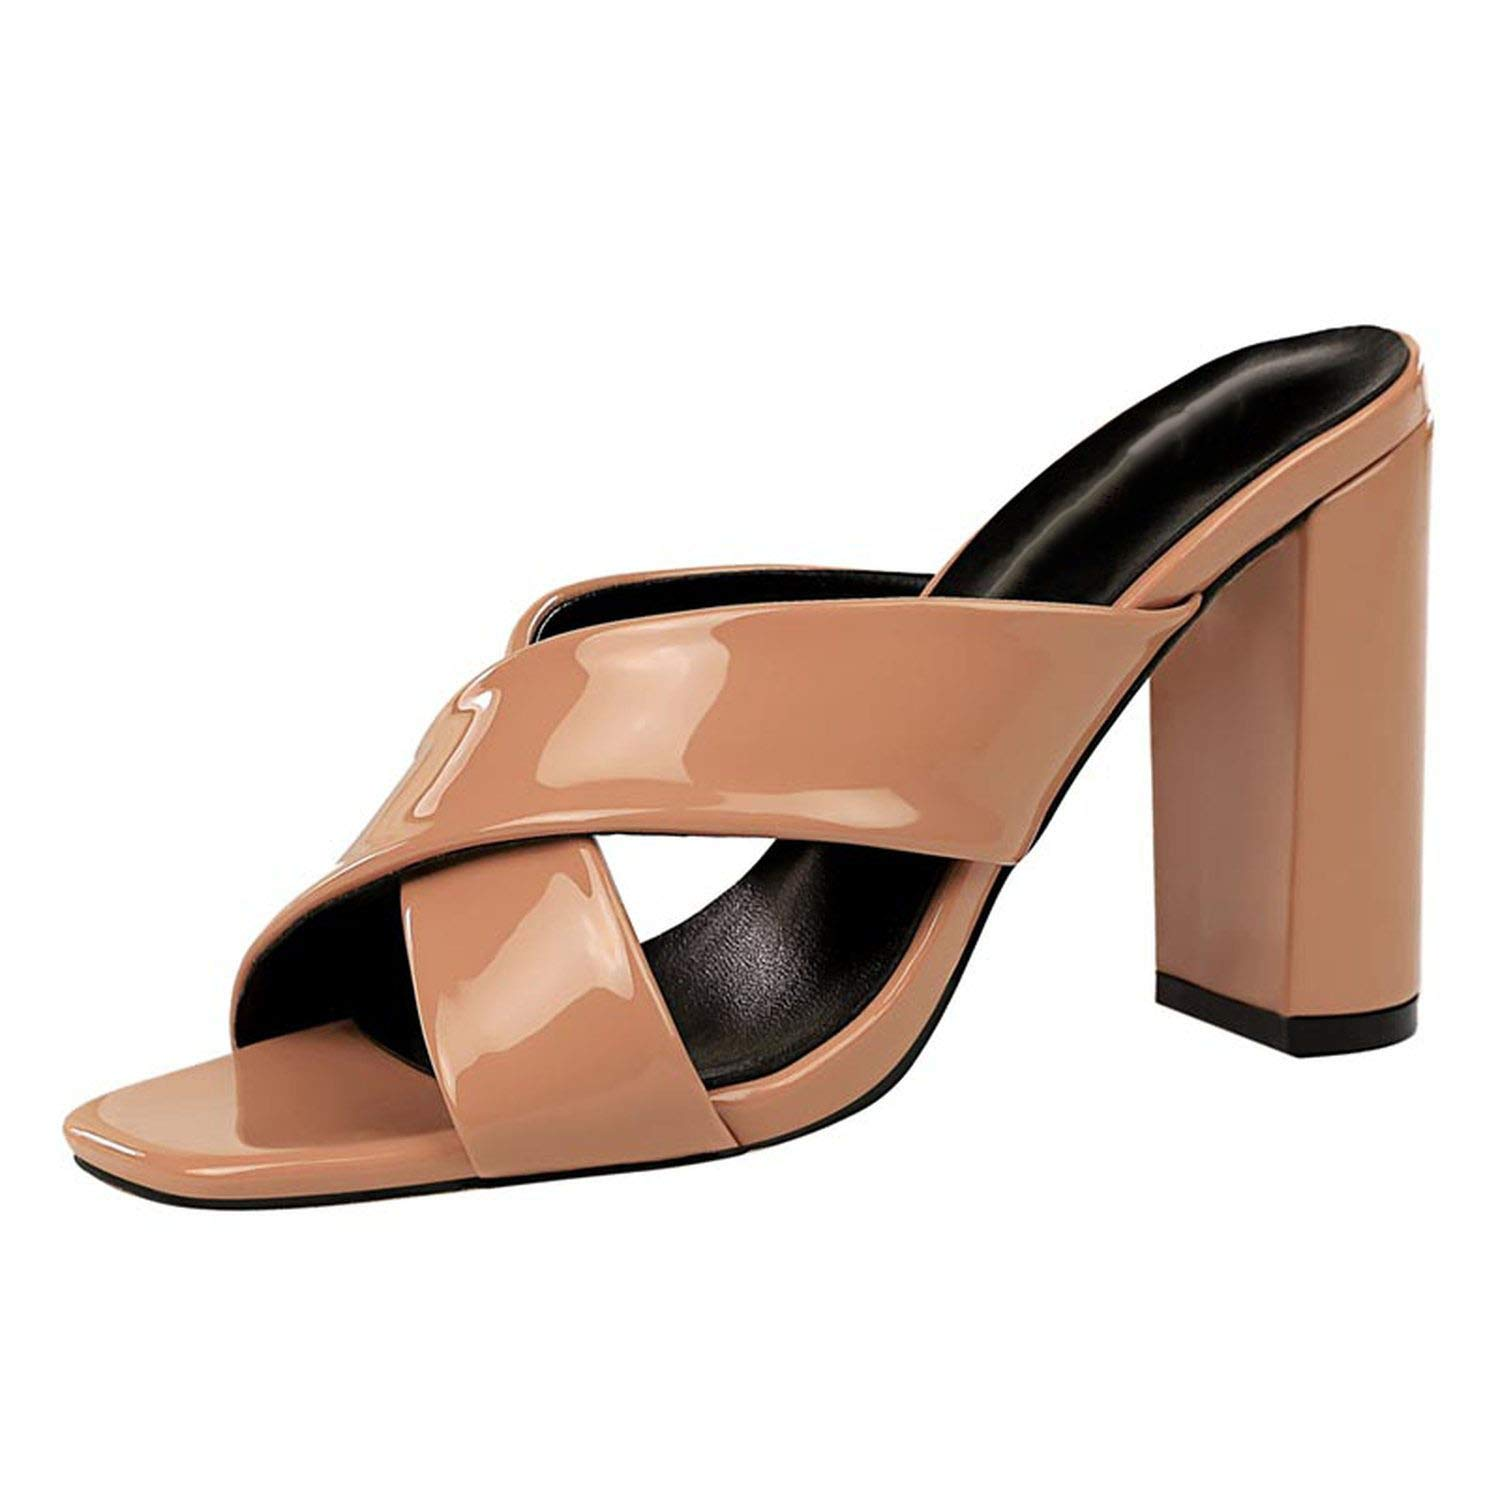 Nude Little lemon 2019 Women Mules Slippers High Square Heel Solid Fashion Sexy Khaki Outside Slippers